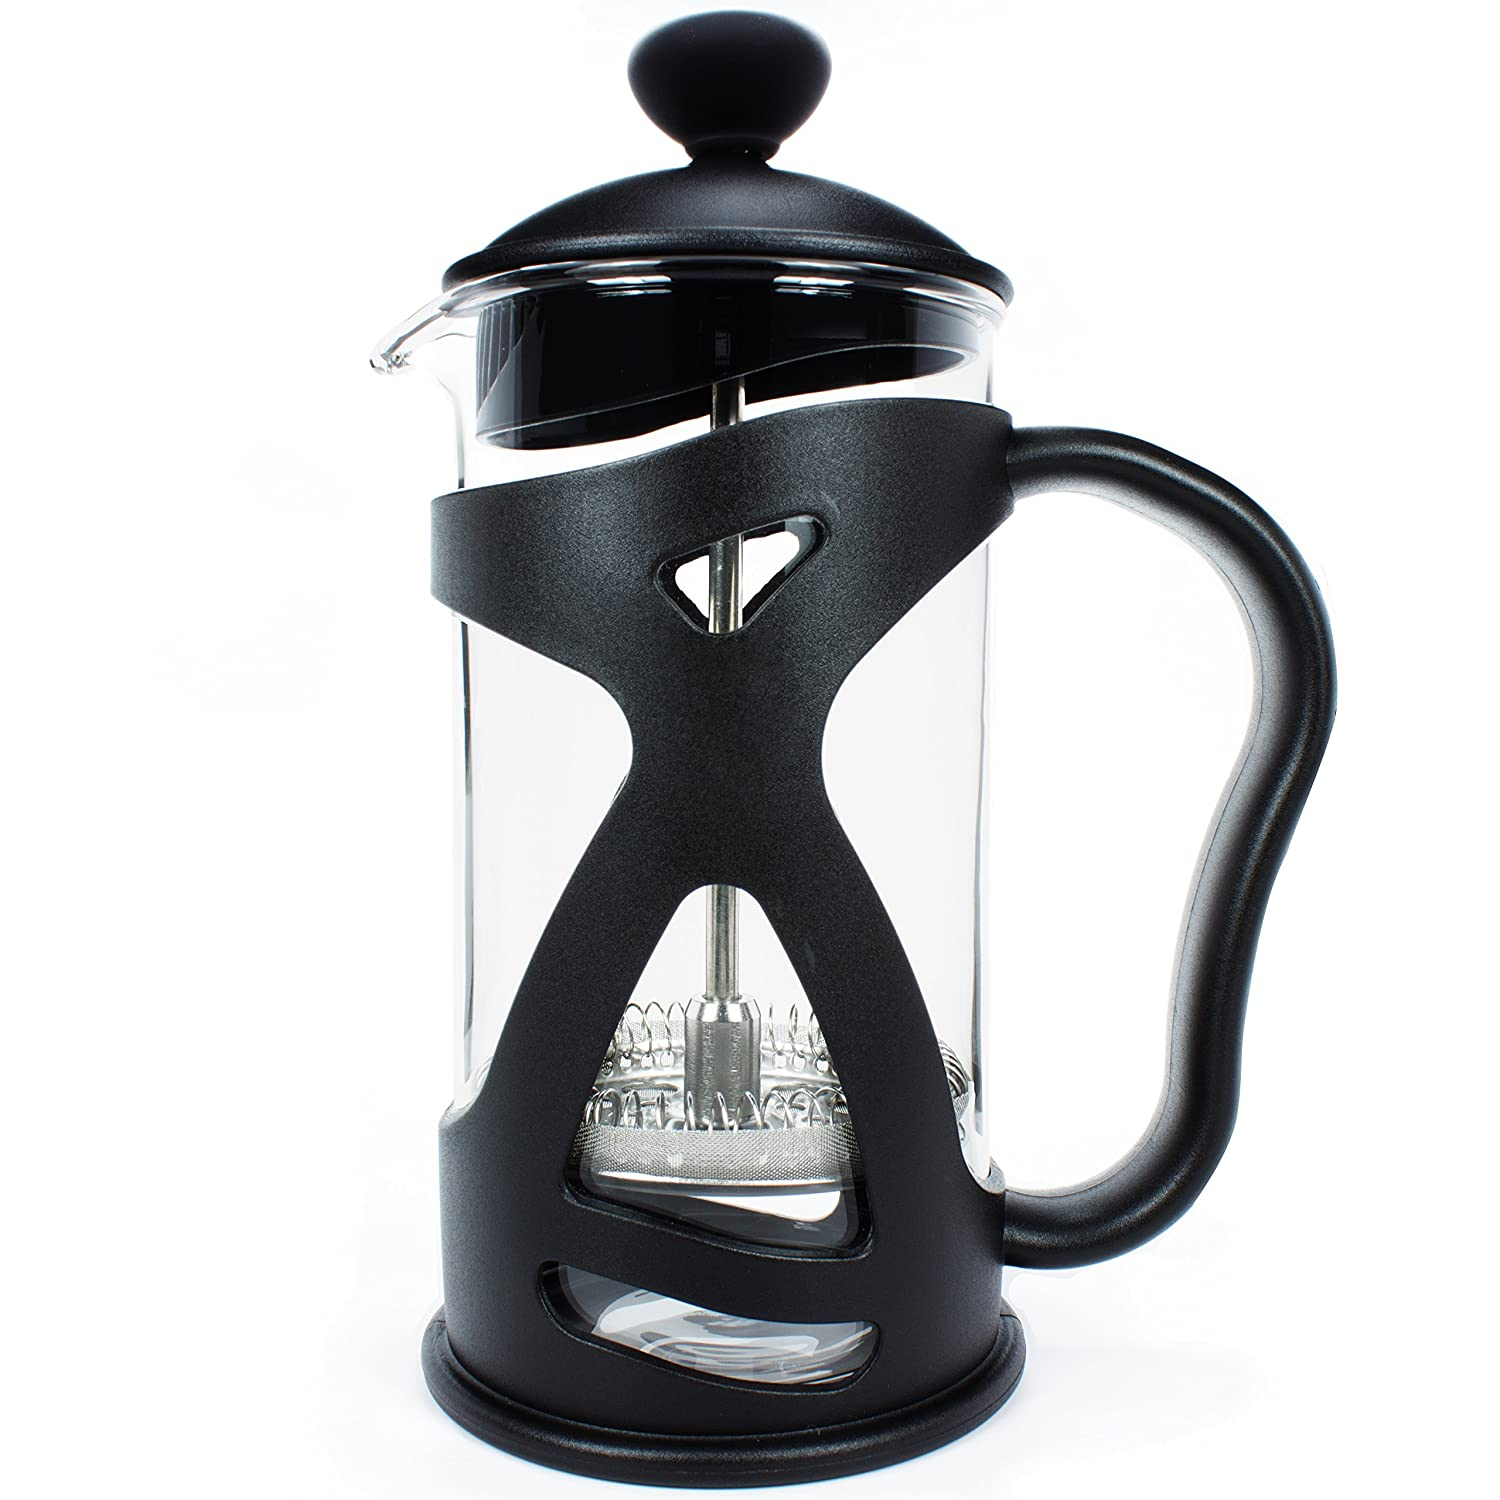 KONA French Press Small Single Serve Coffee and Tea Maker - 12 Ounce